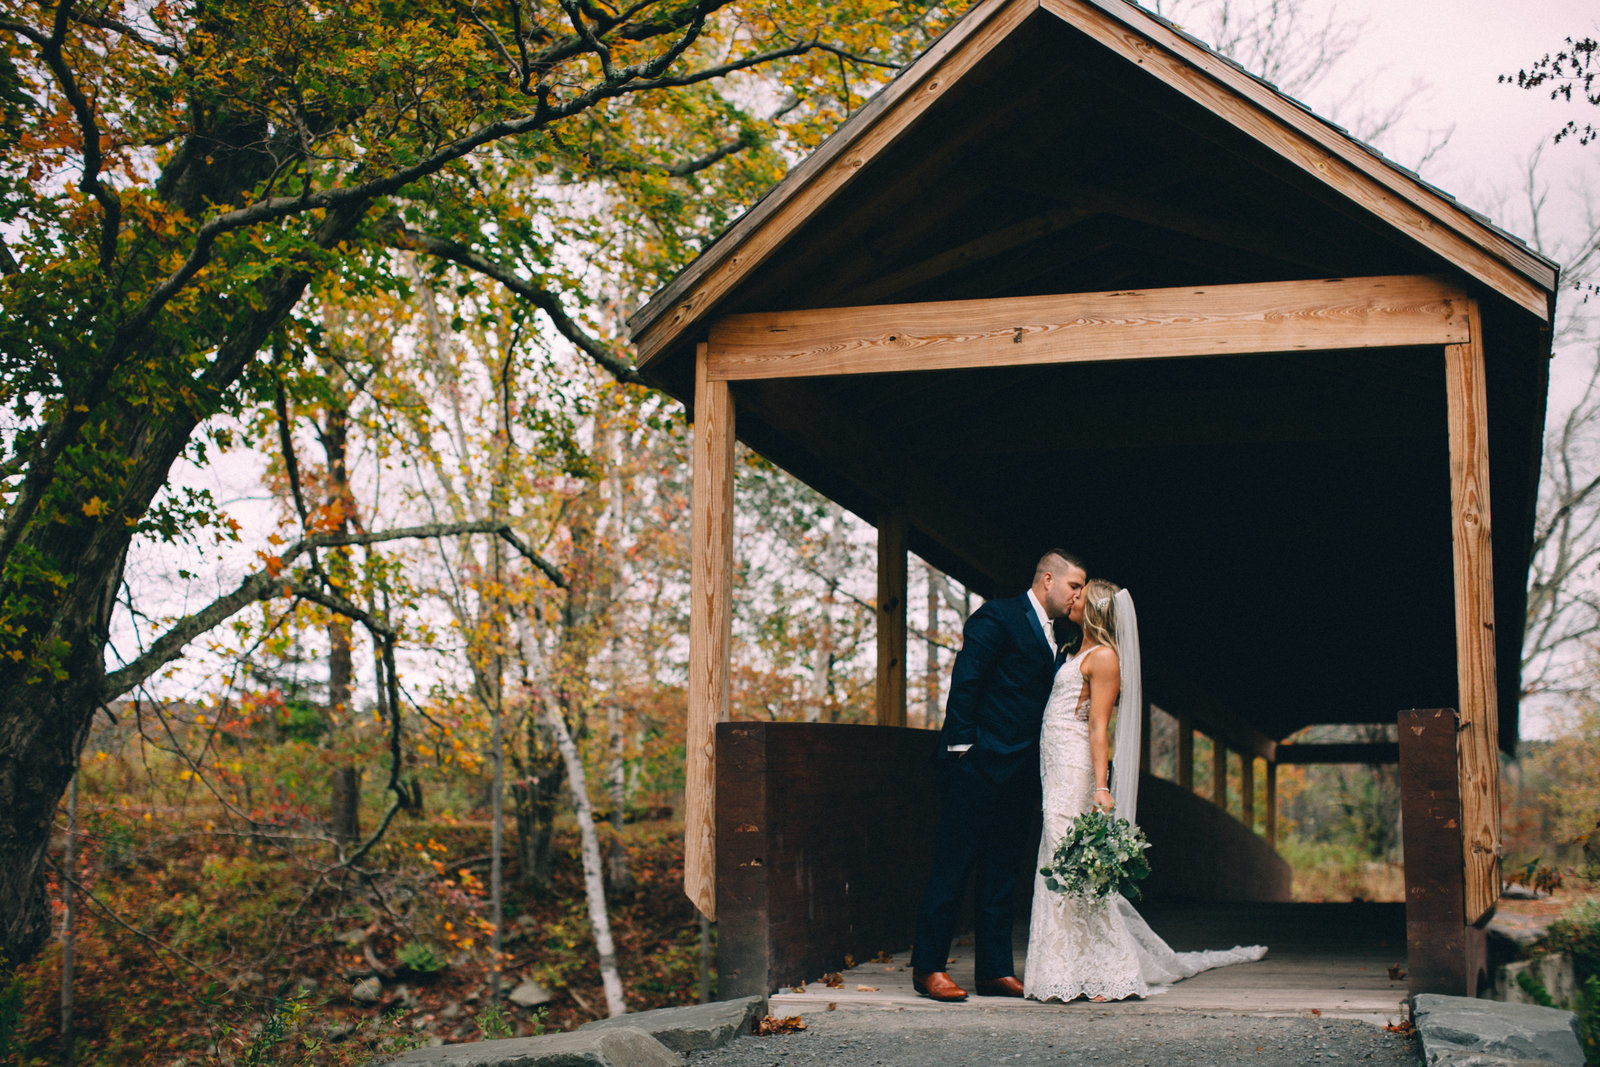 TurnquistCollective-HudsonValley-Wedding-Photographer-windham-mountain